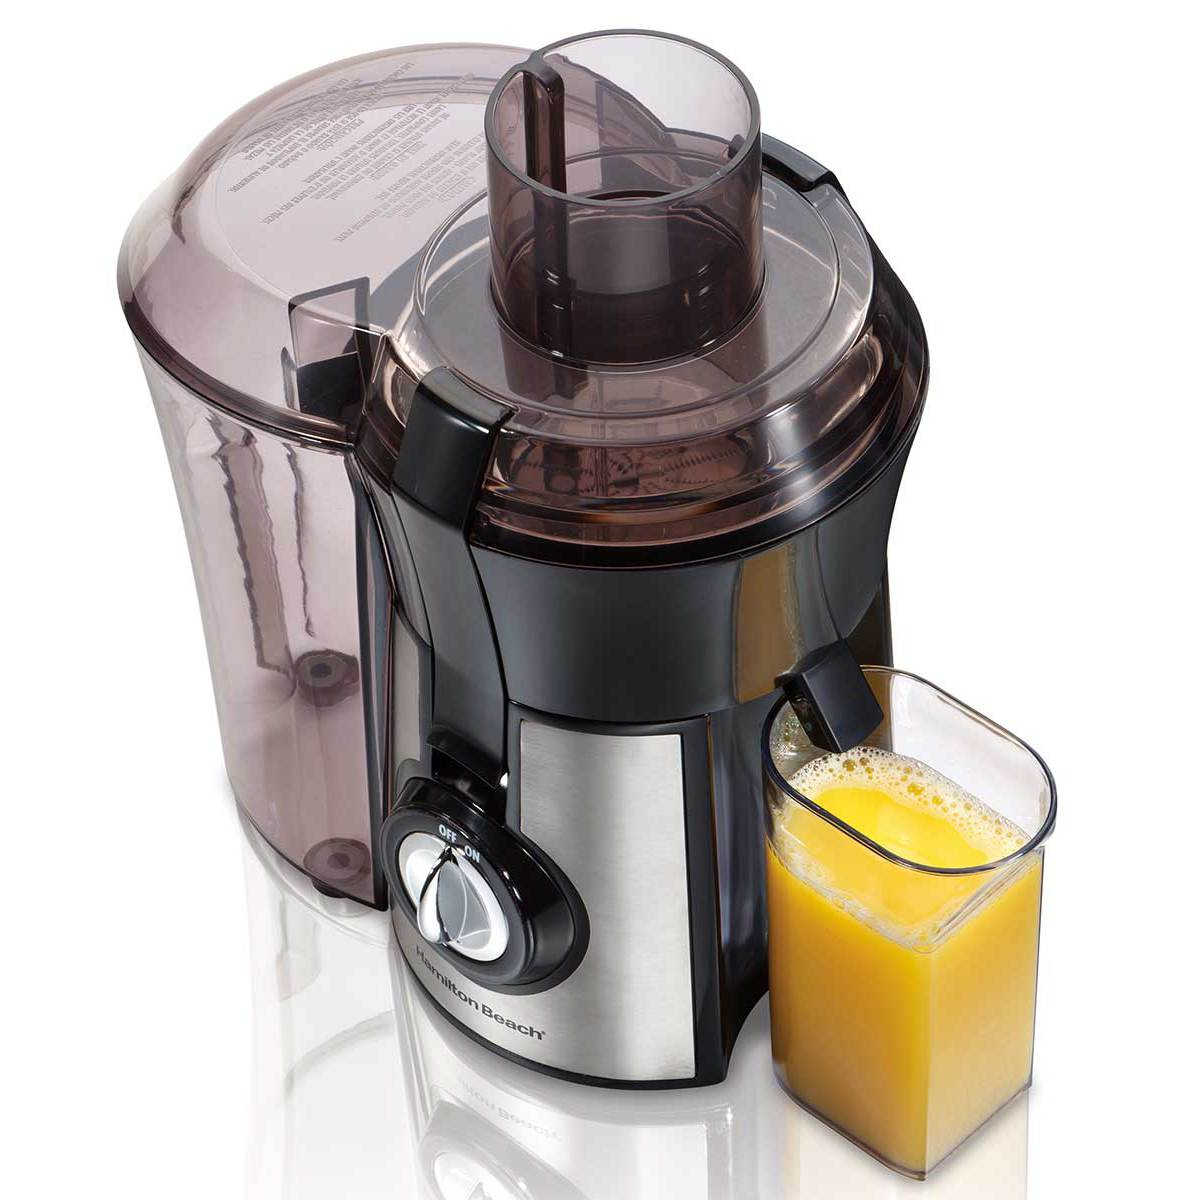 Hamilton Beach Pro Juicer Machine, 800W Review